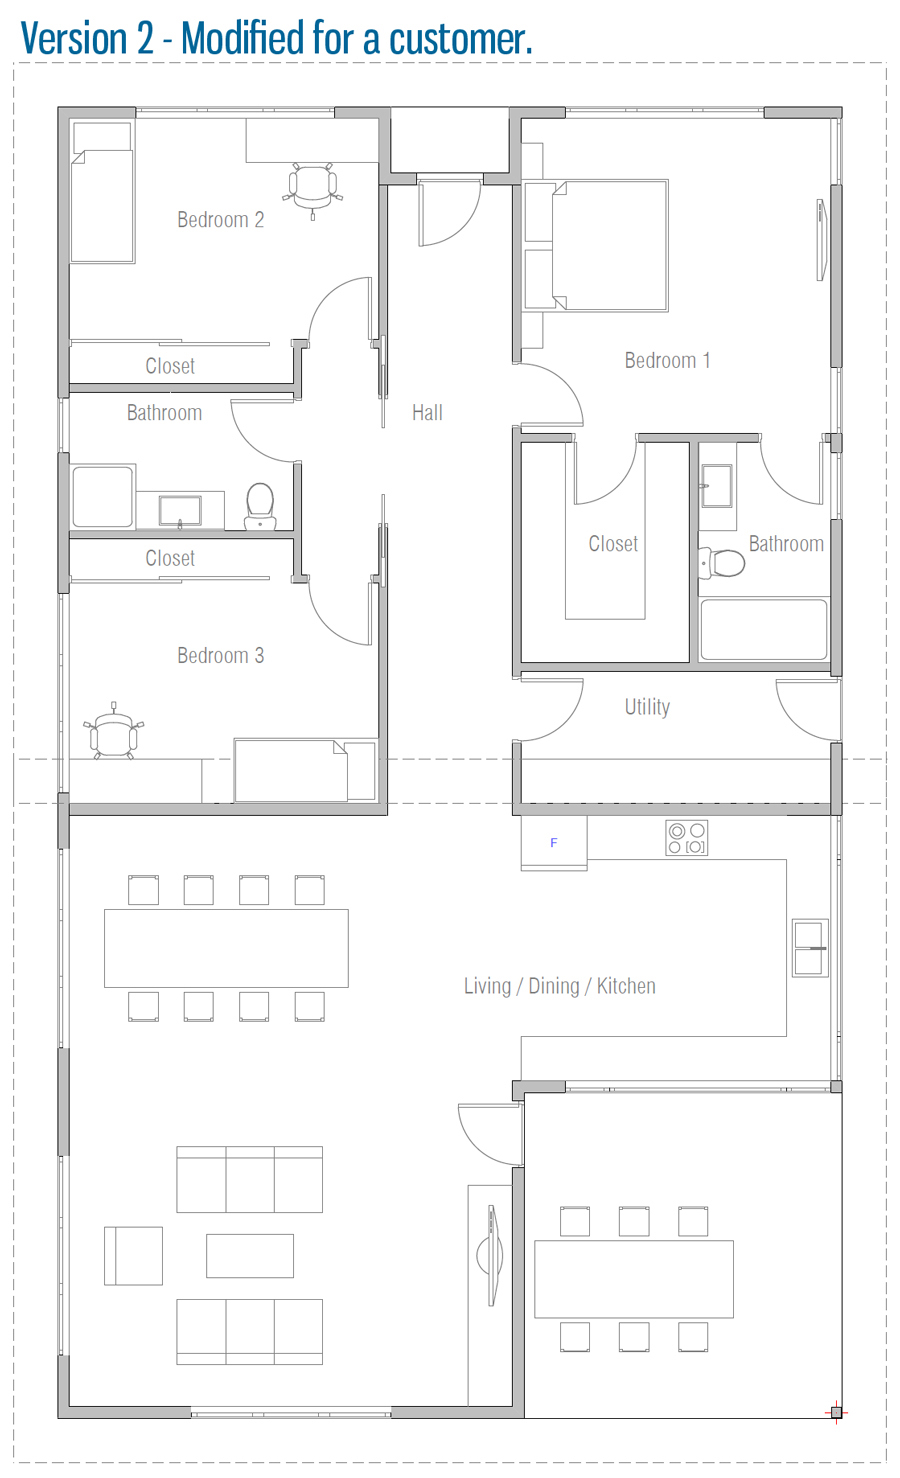 house-plans-2021_20_HOUSE_PLAN_CH668_floor_plan_V2.jpg